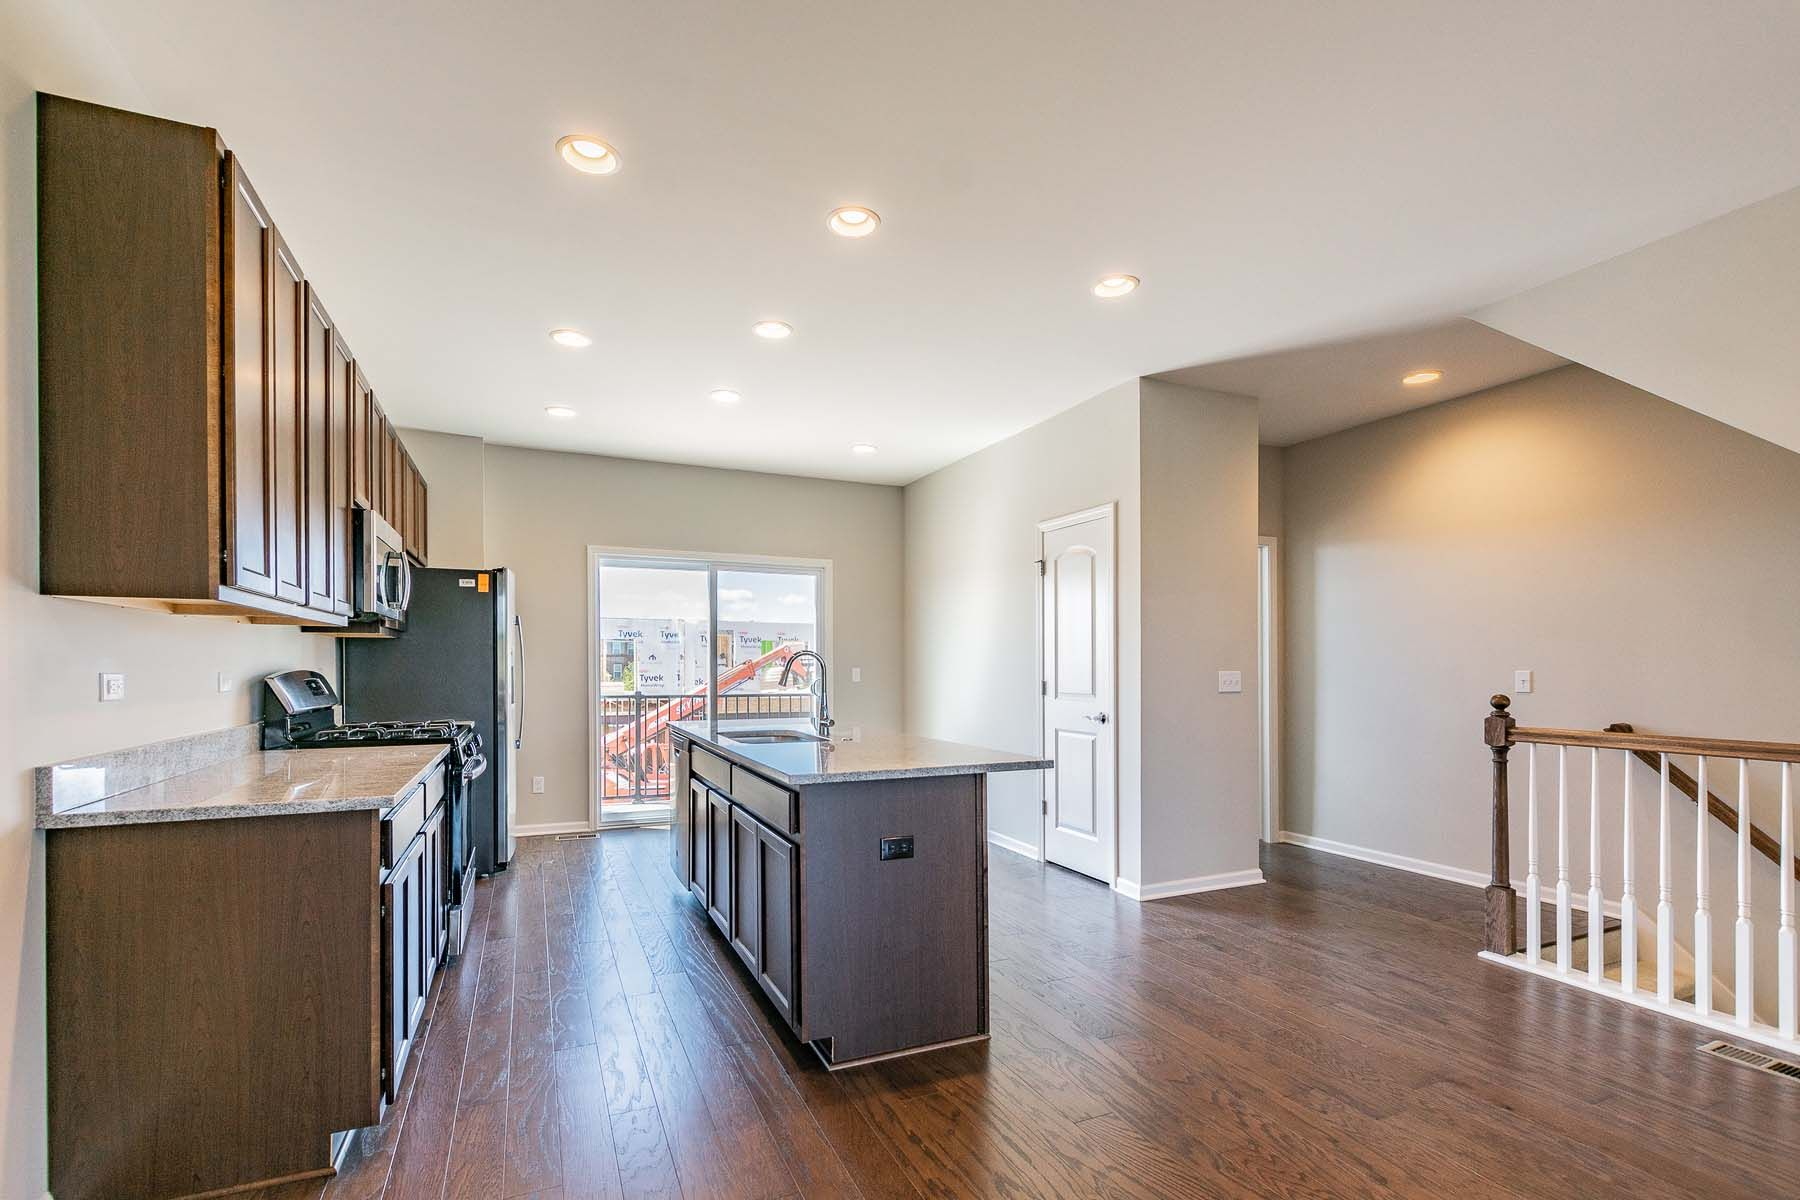 Kitchen featured in the Maybury By M/I Homes in Detroit, MI